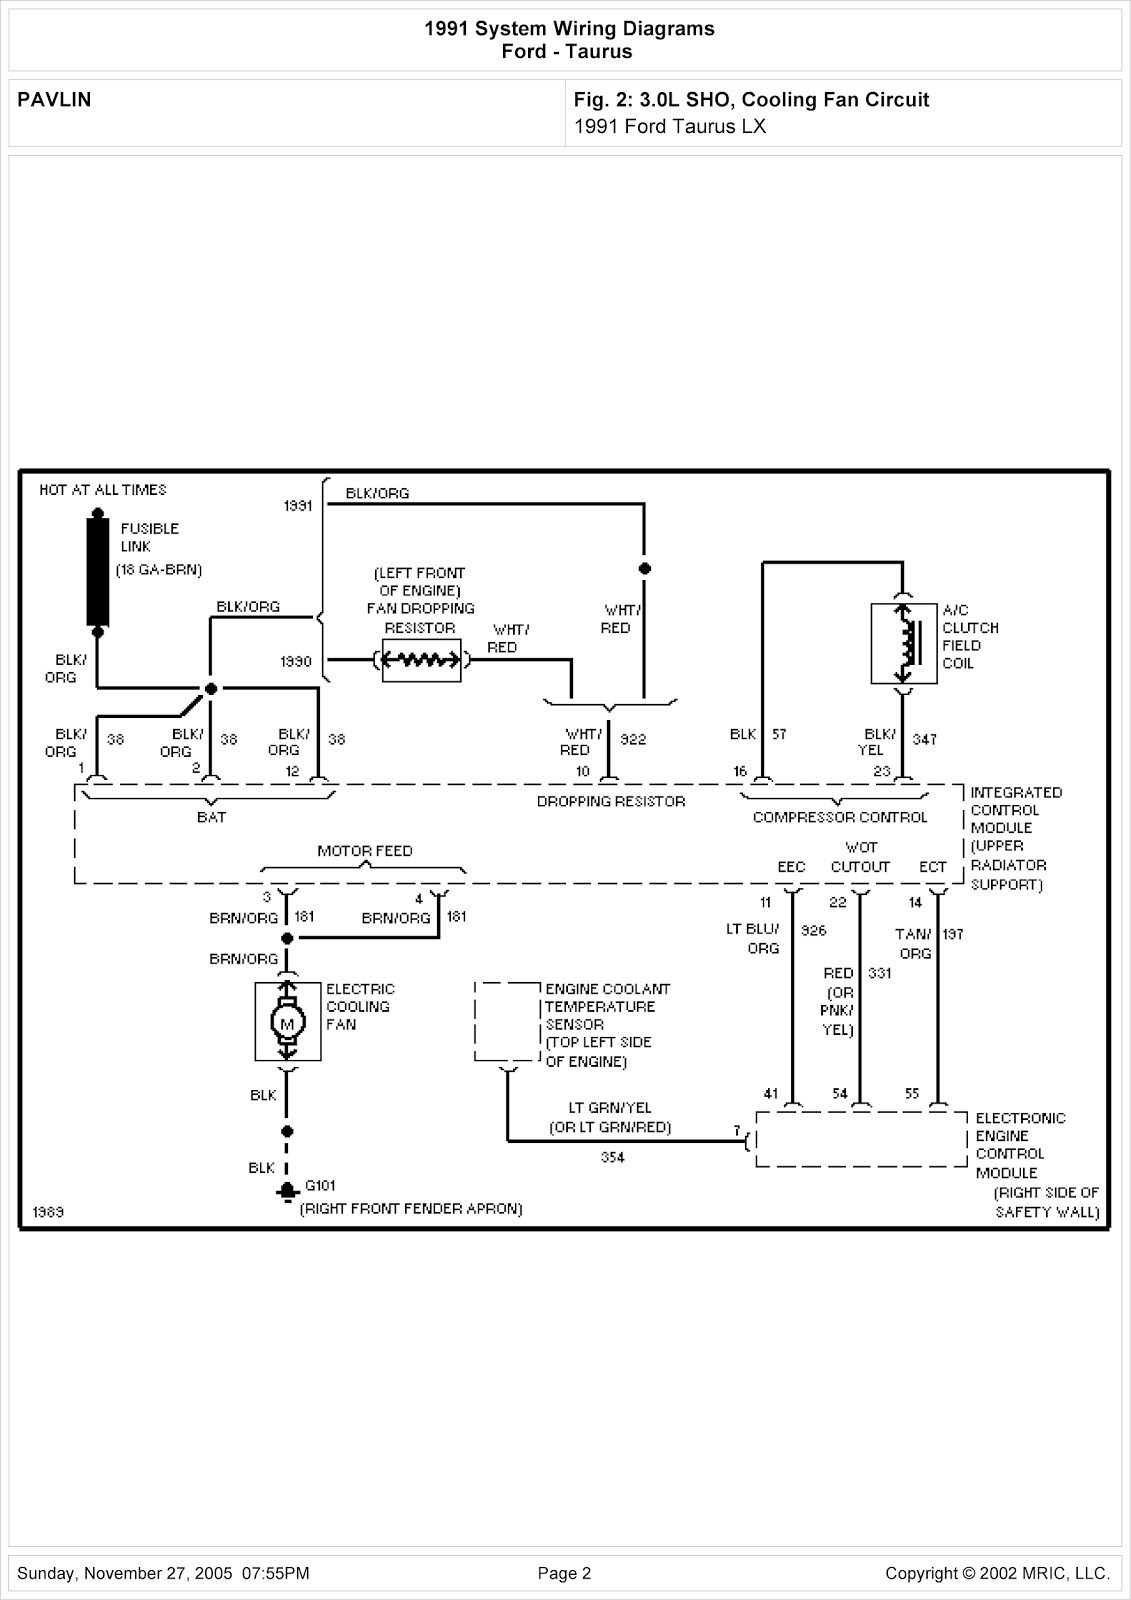 1999 Ford Taurus System Wiring Diagram cooling Fan Circuit ...